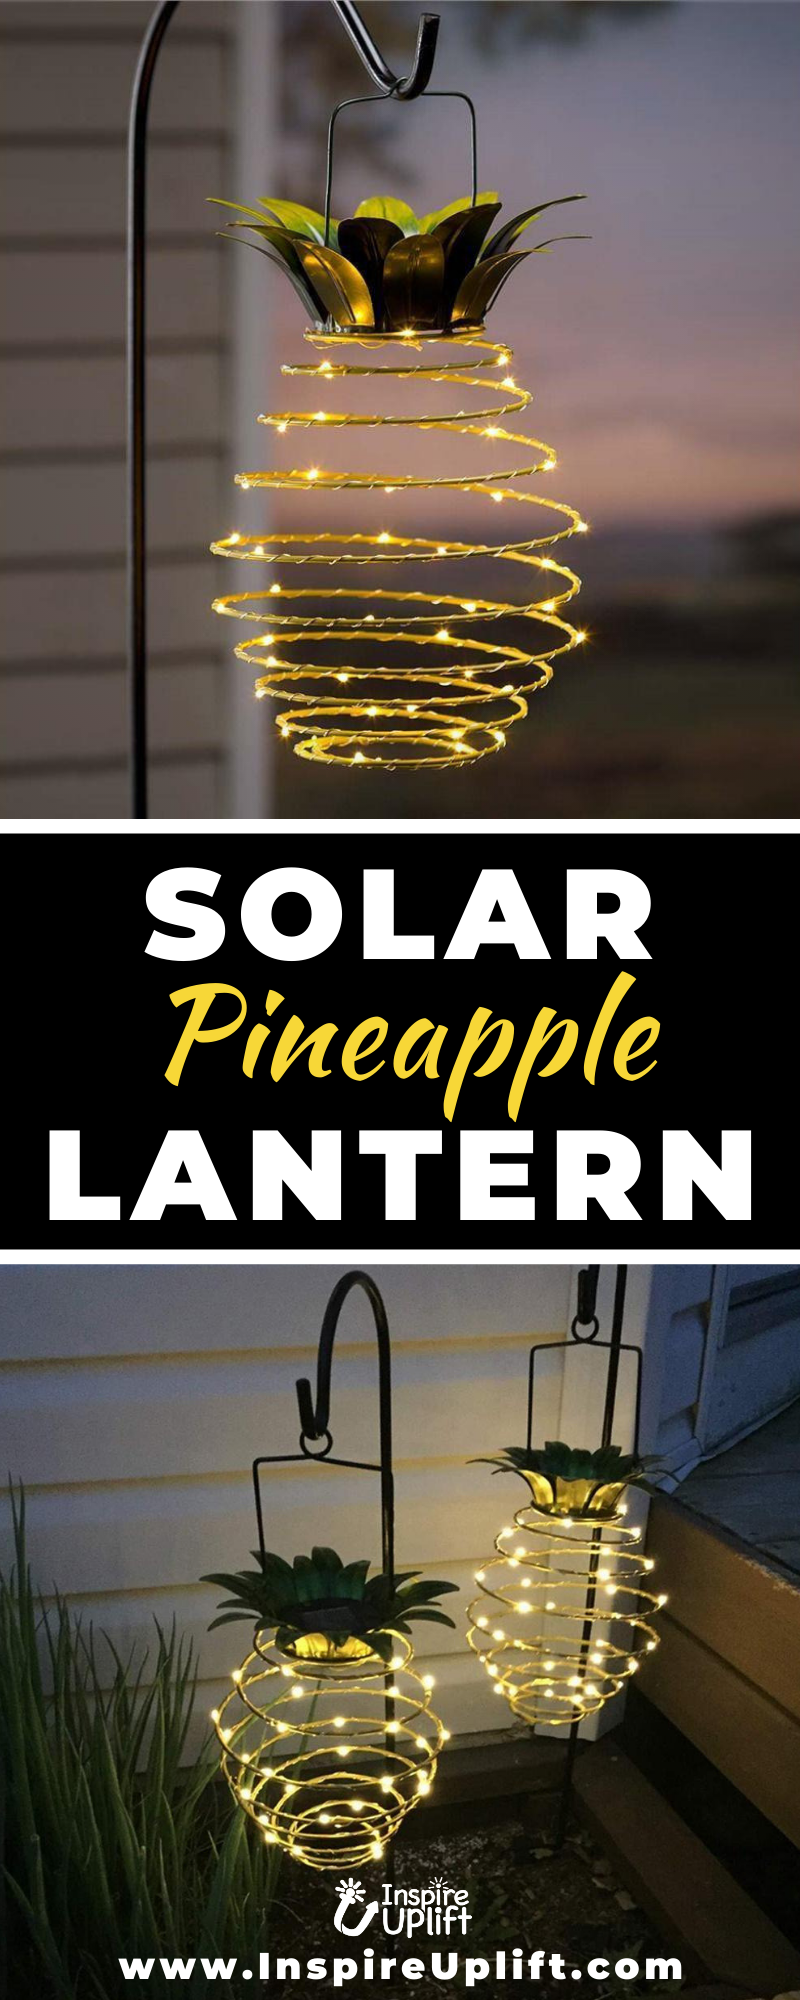 Solar Pineapple Lantern 😍 InspireUplift.com